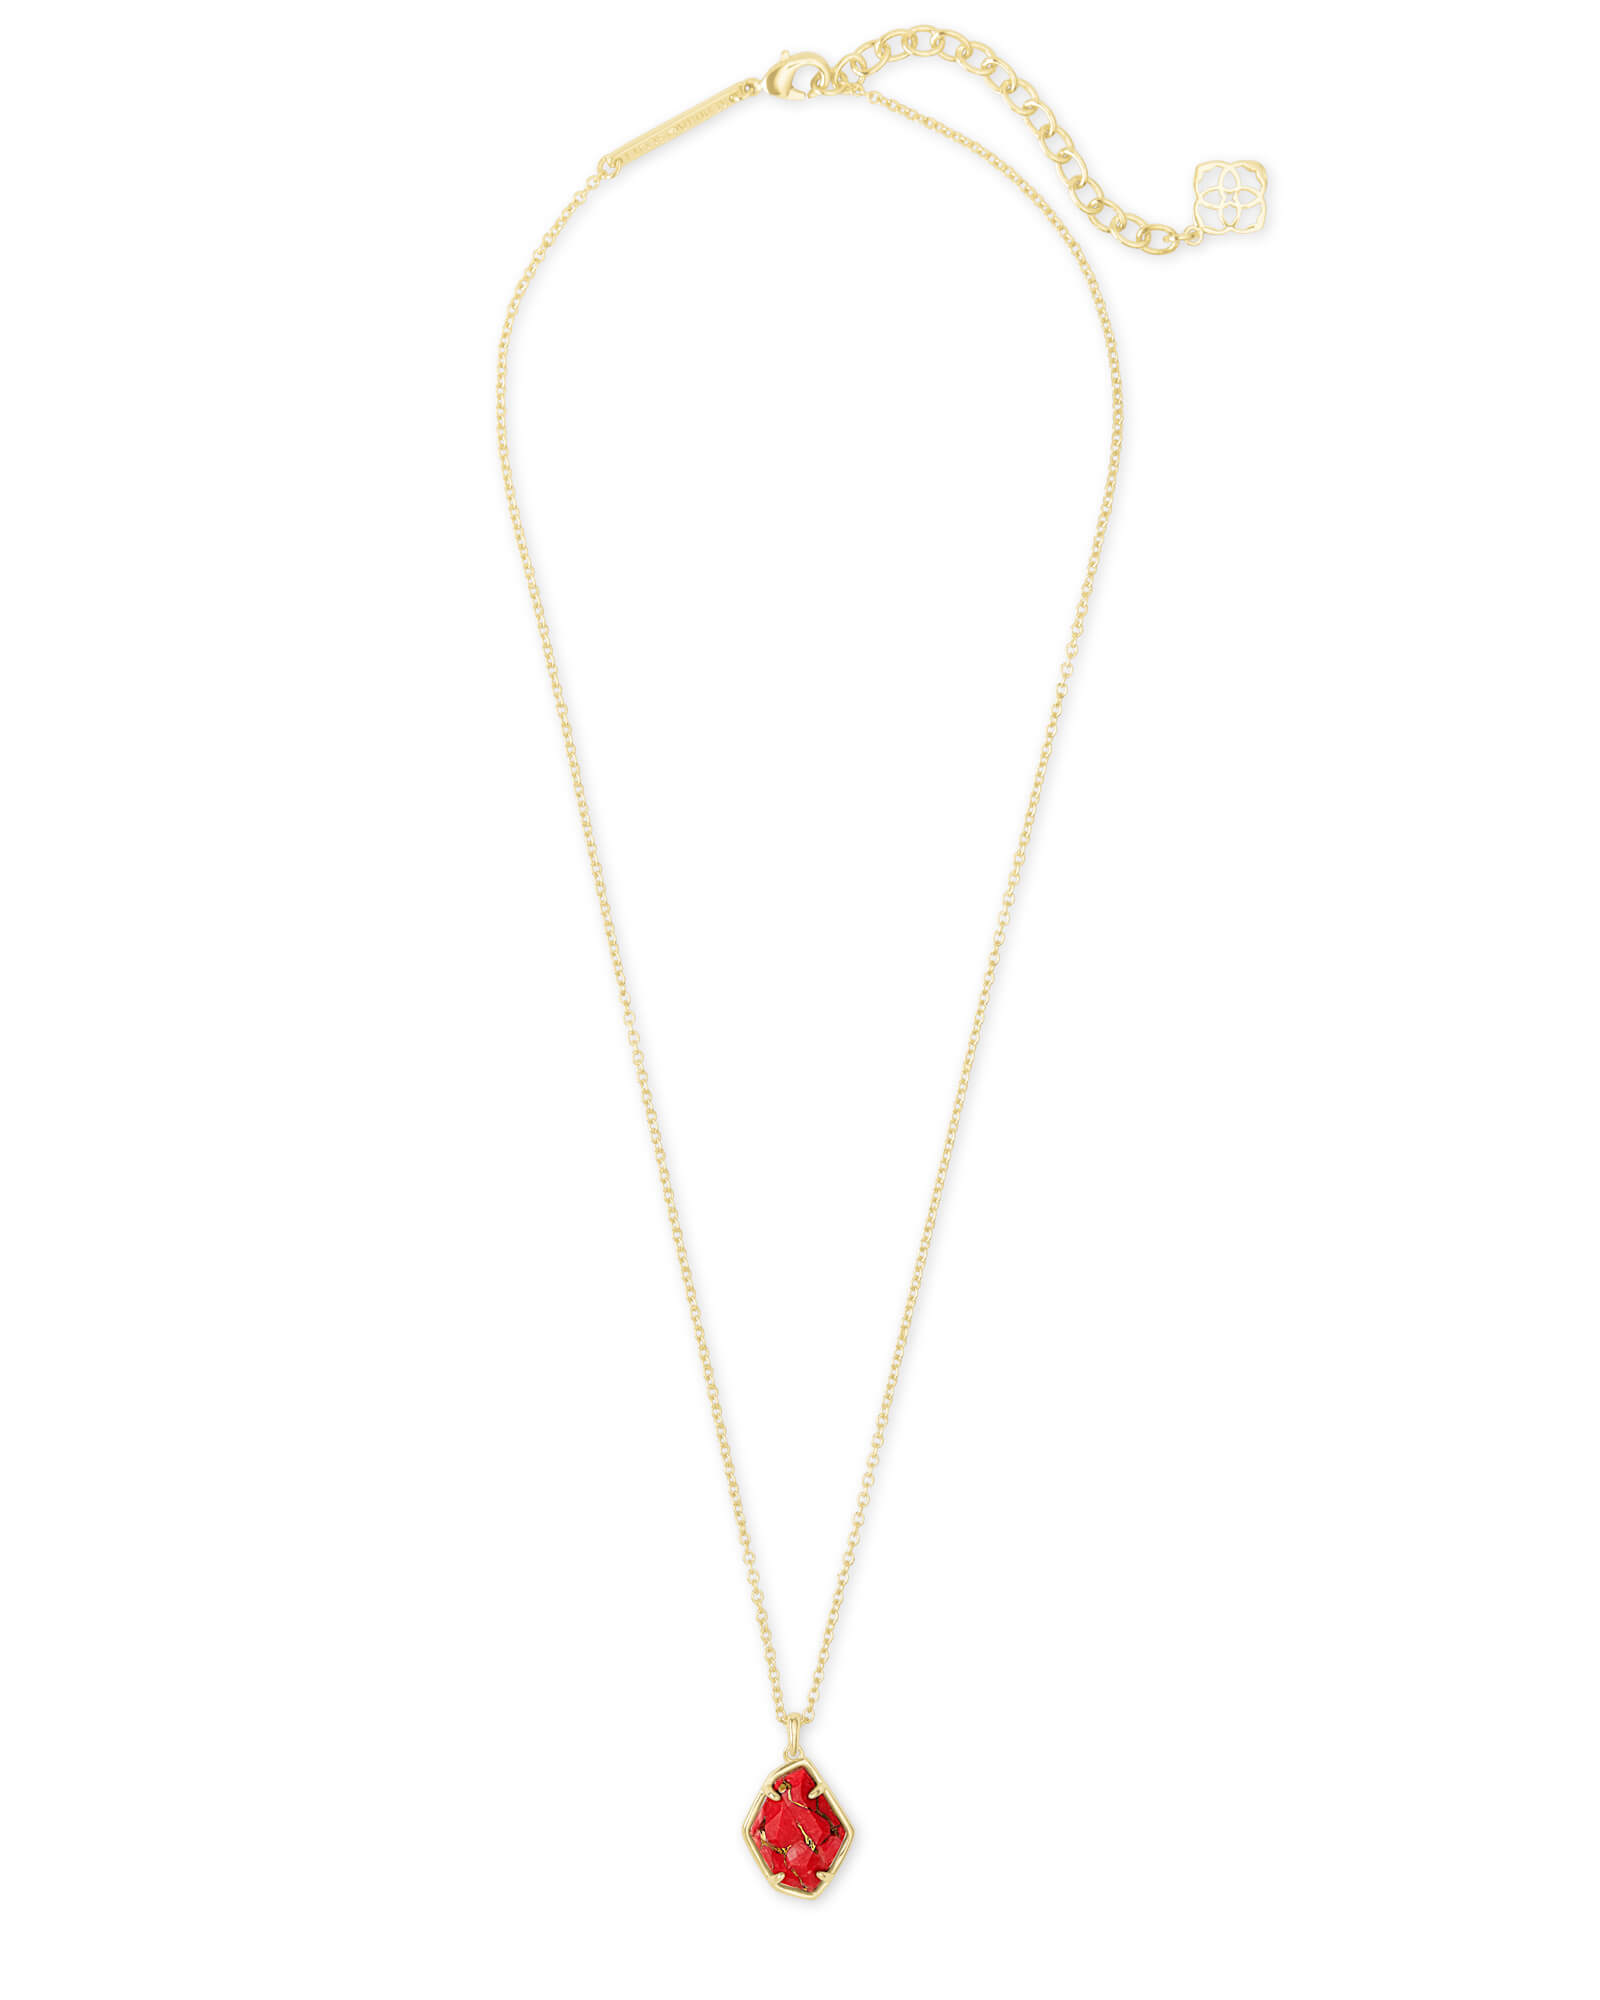 Ellington Gold Pendant Necklace in Bronze Veined Red Magnesite